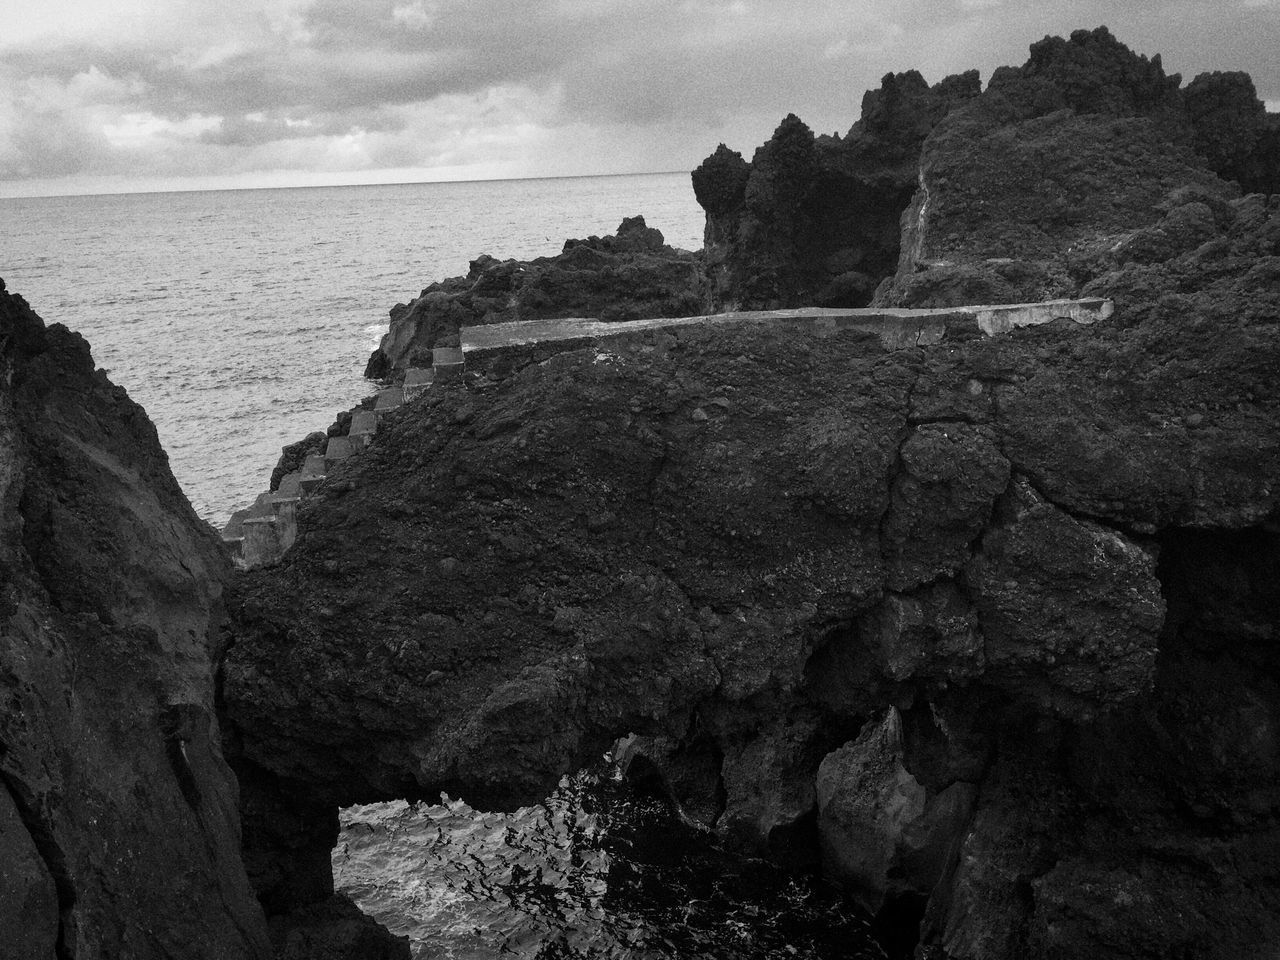 Sea Rock - Object Rock Formation Nature Water Beauty In Nature Scenics Cliff Tranquility No People Tranquil Scene Landscape_photography Black & White Black And White Black&white Azores Pico Sky Day Horizon Over Water Architecture